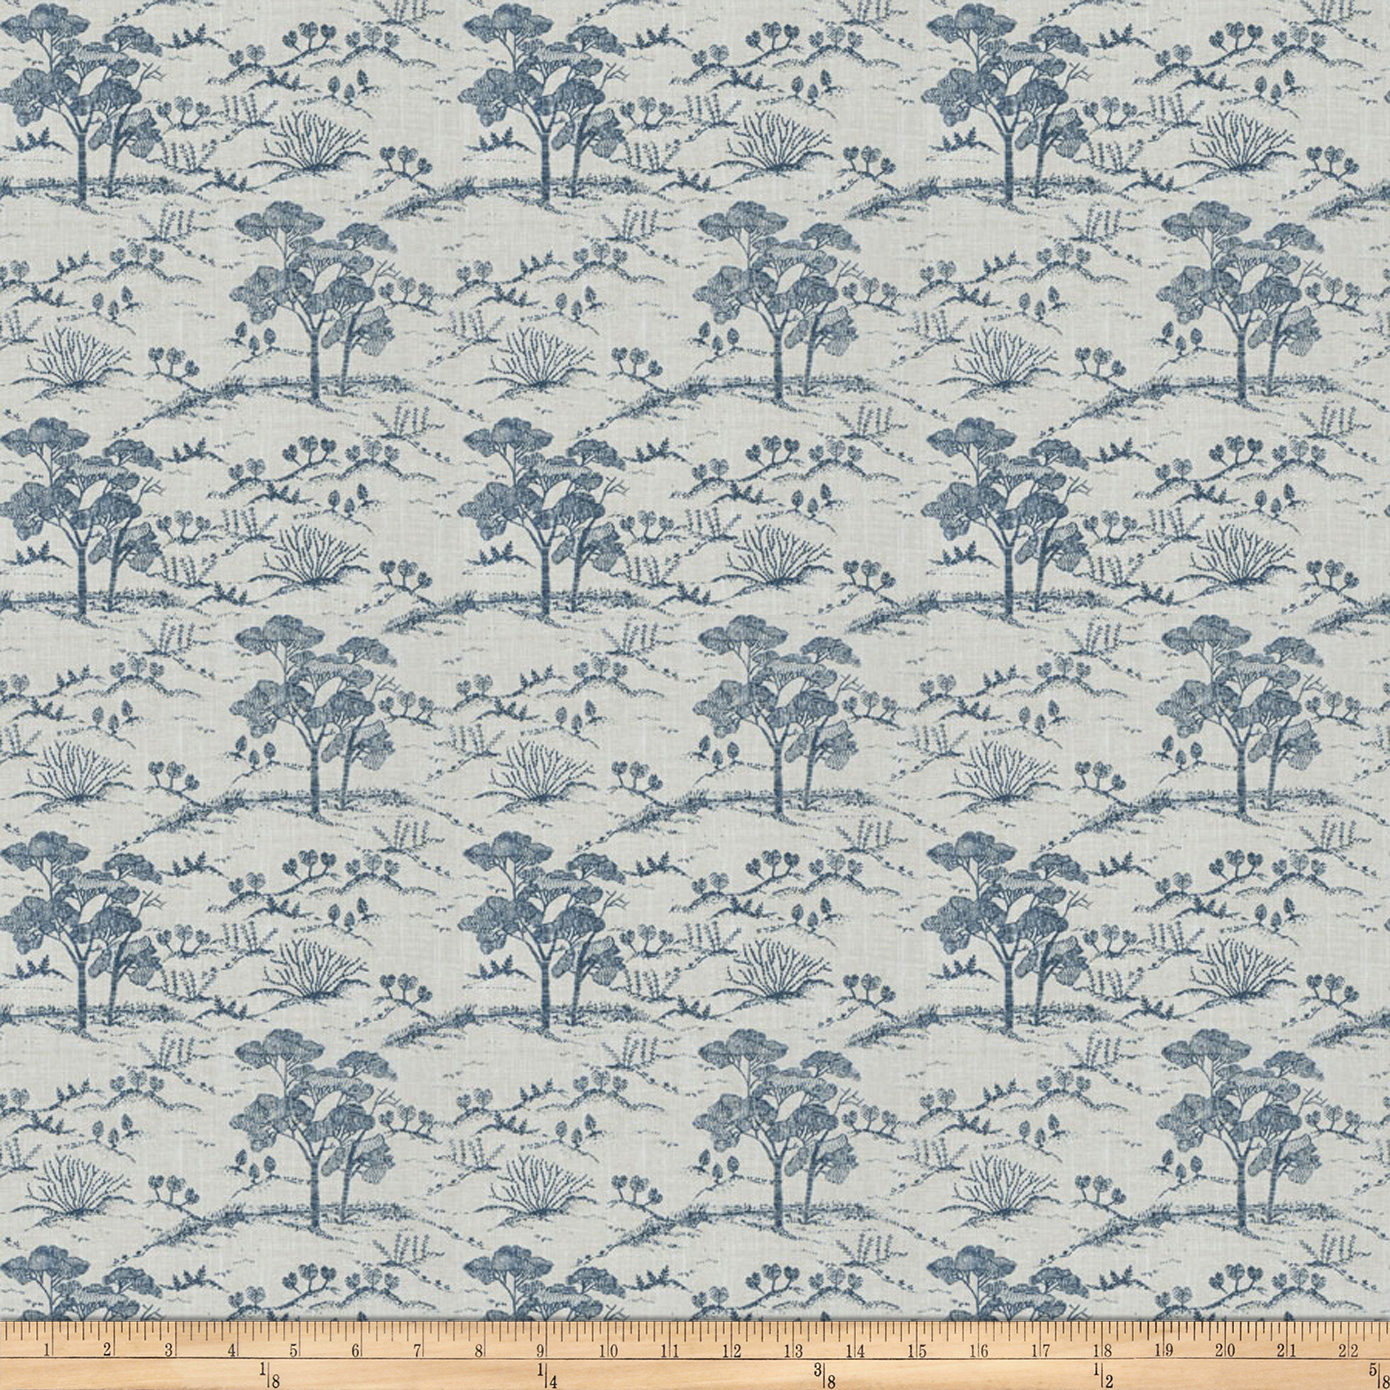 Fabricut Agriculture Toile Navy